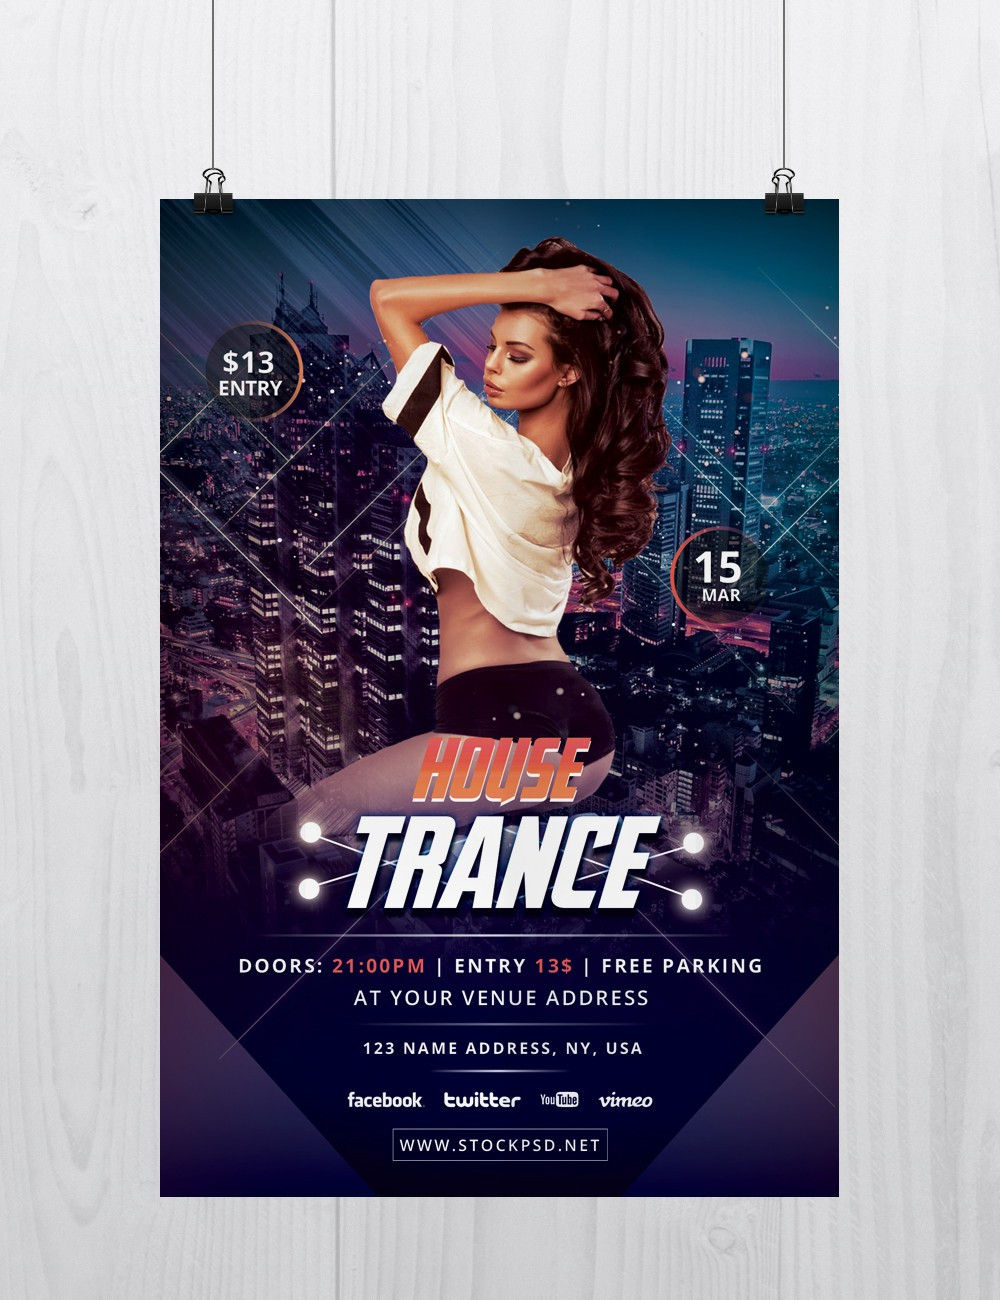 House Trance U2013 Download Free PSD Flyer Template